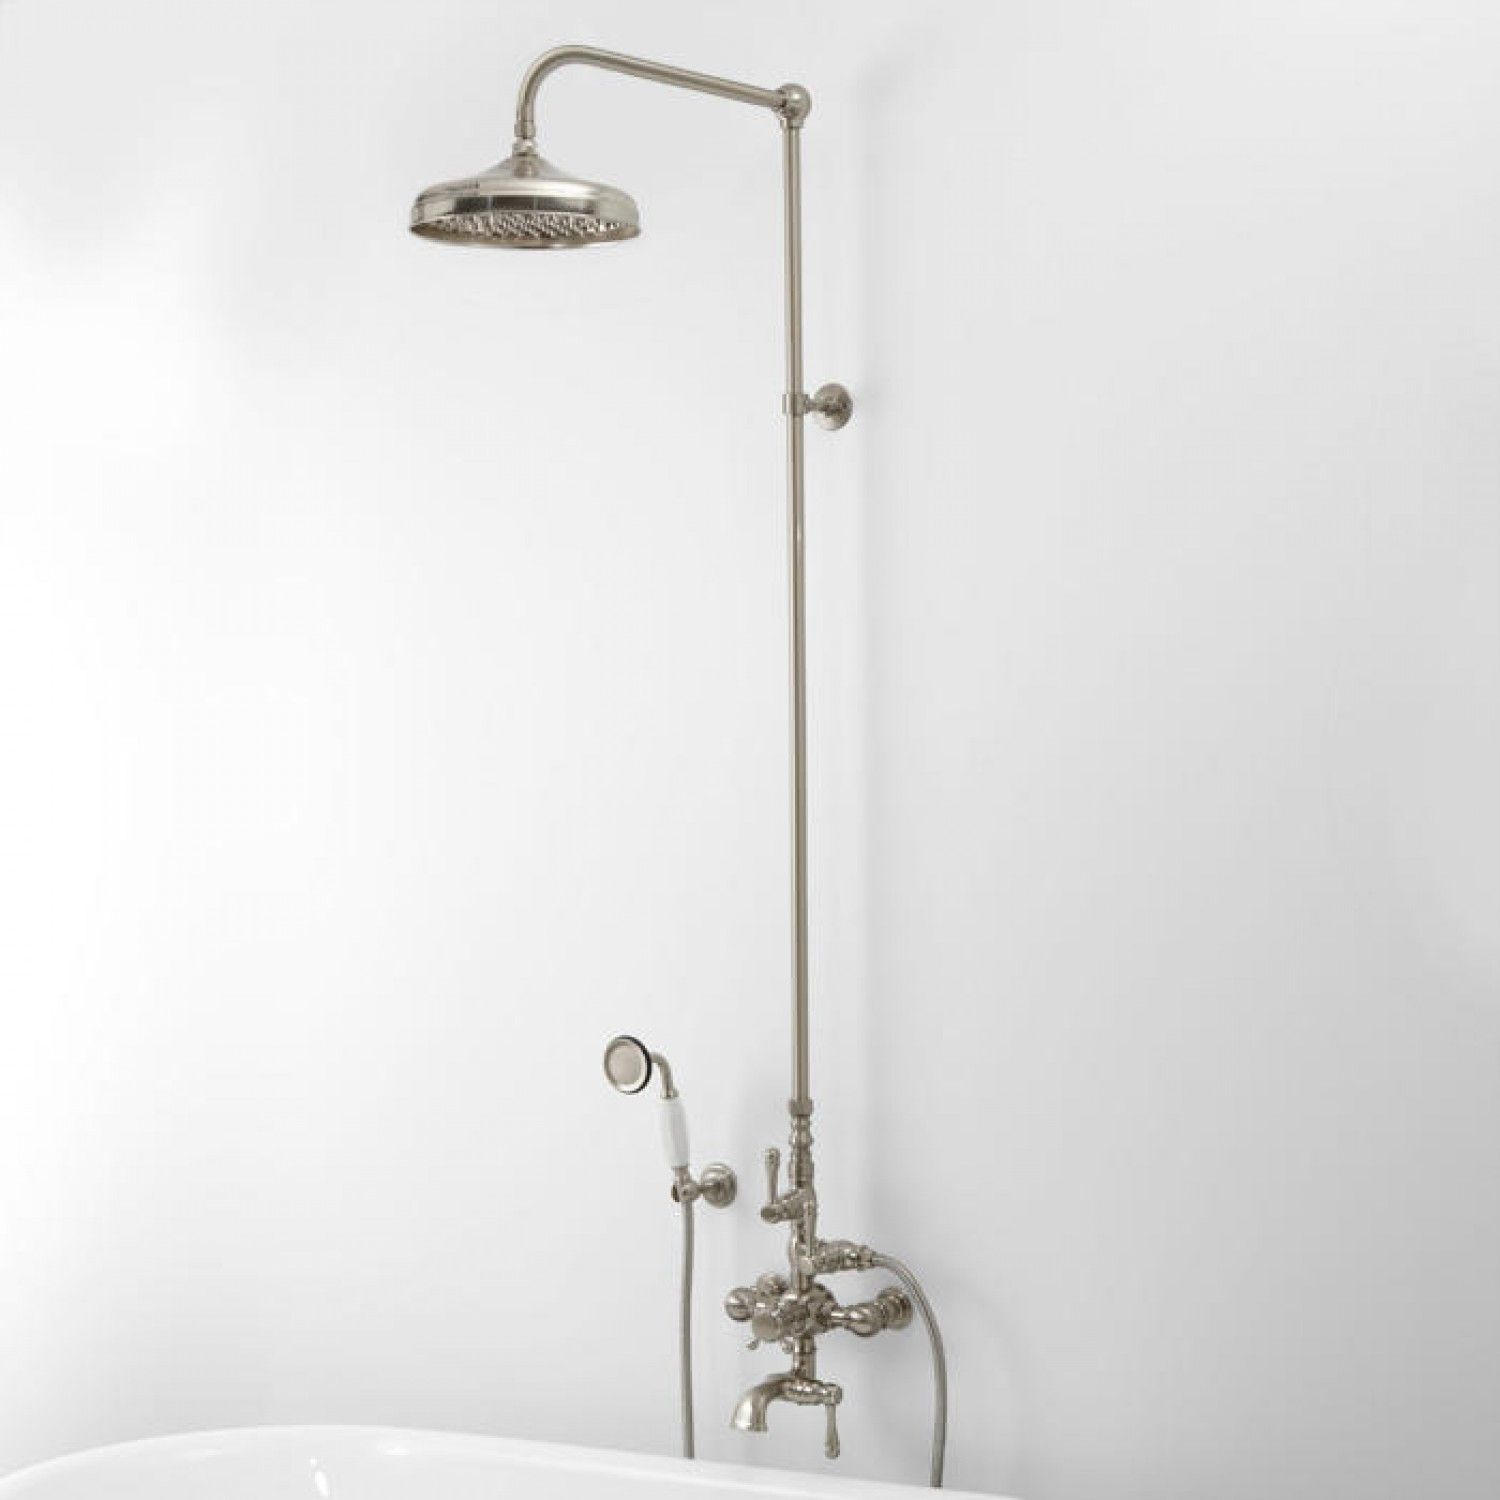 Bathroom shower pipe - Bath Room Thermostatic Exposed Pipe Tub And Shower